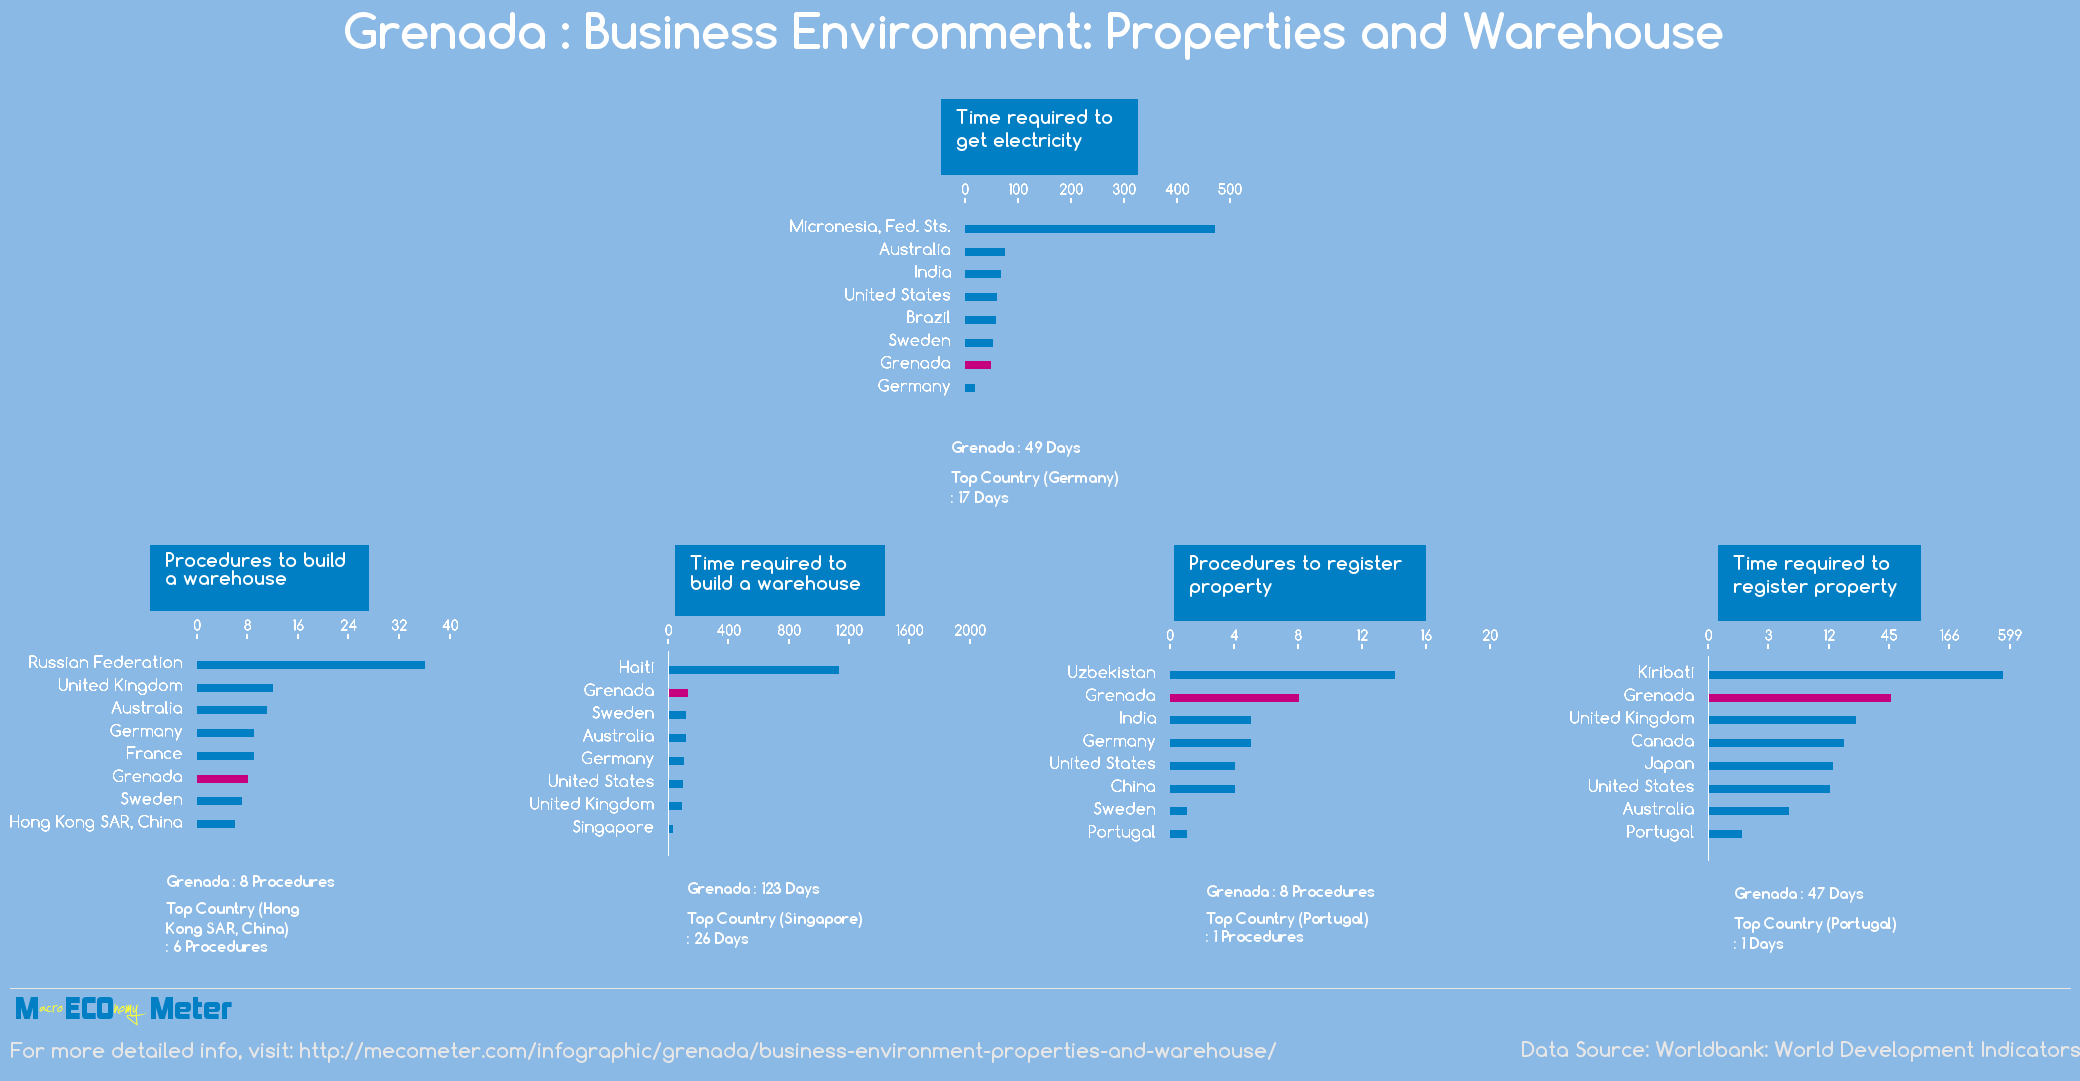 Grenada : Business Environment: Properties and Warehouse